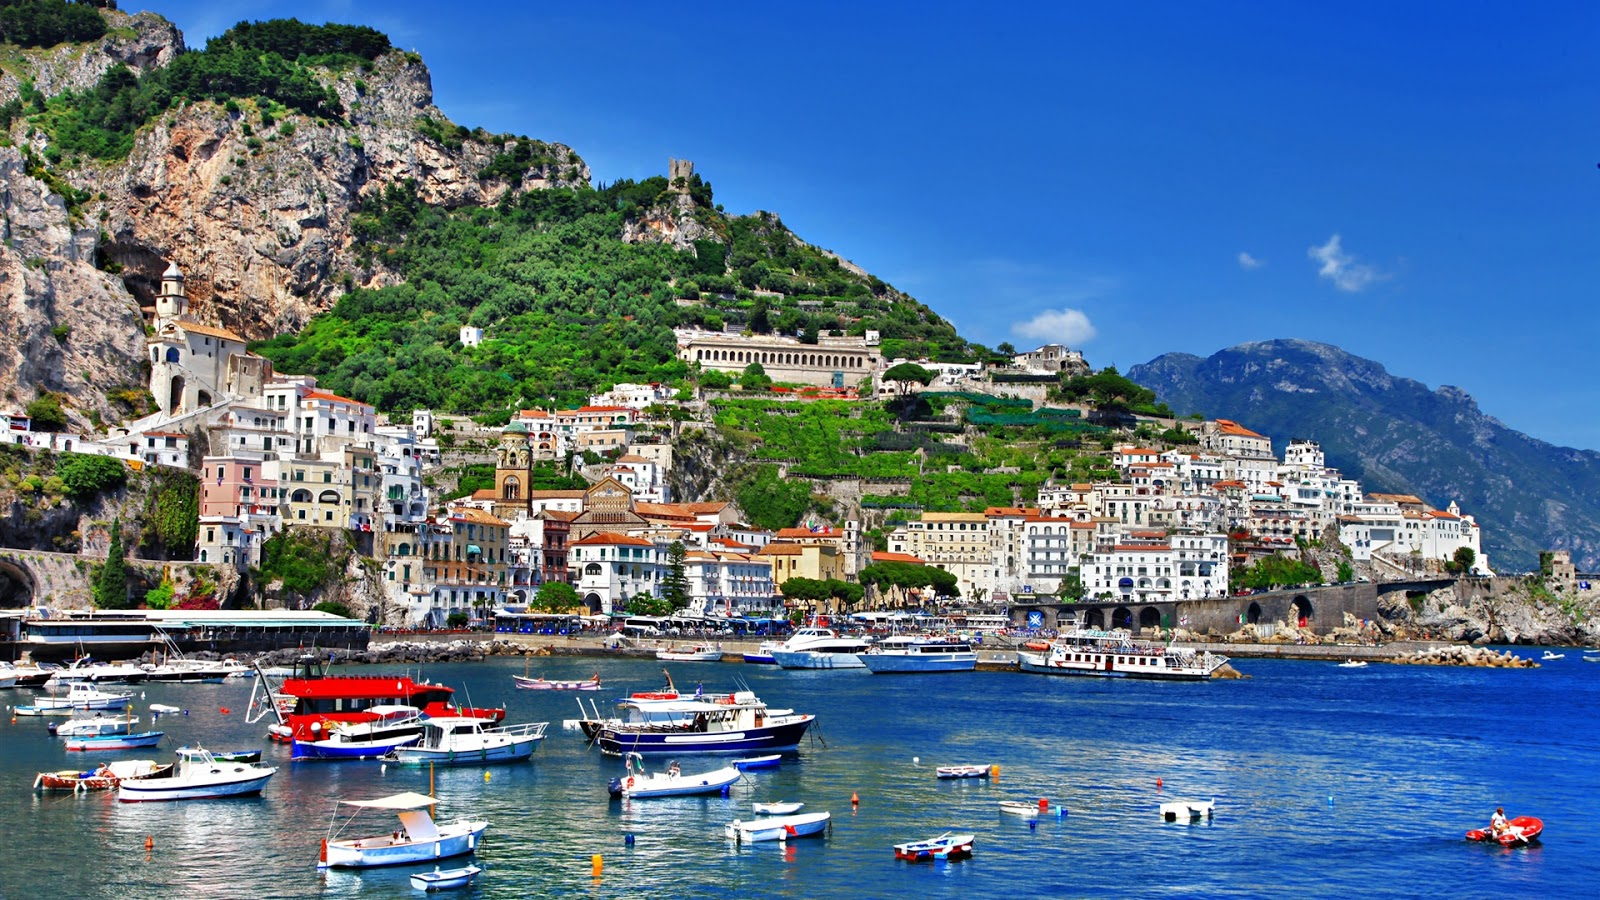 Italy Salerno Full HD Desktop Wallpapers 1080p 1600x900